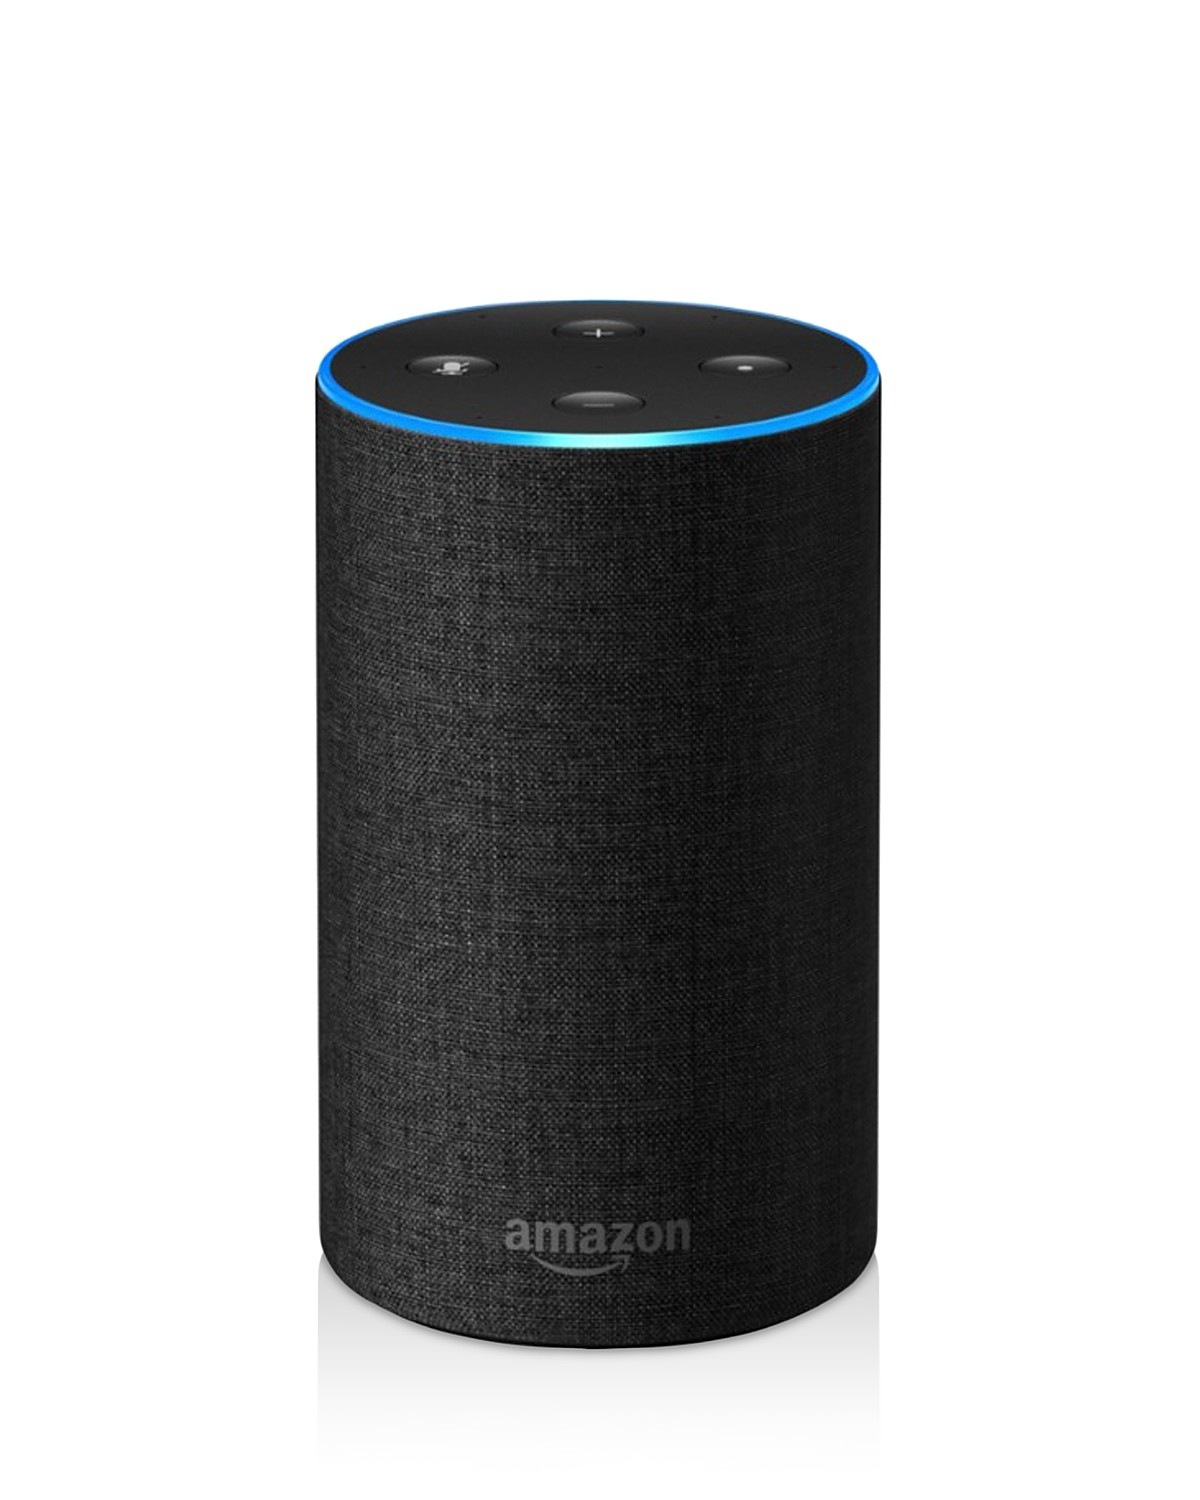 ECHO - Amazon, $79.99Order by 12/20 at 5pm est